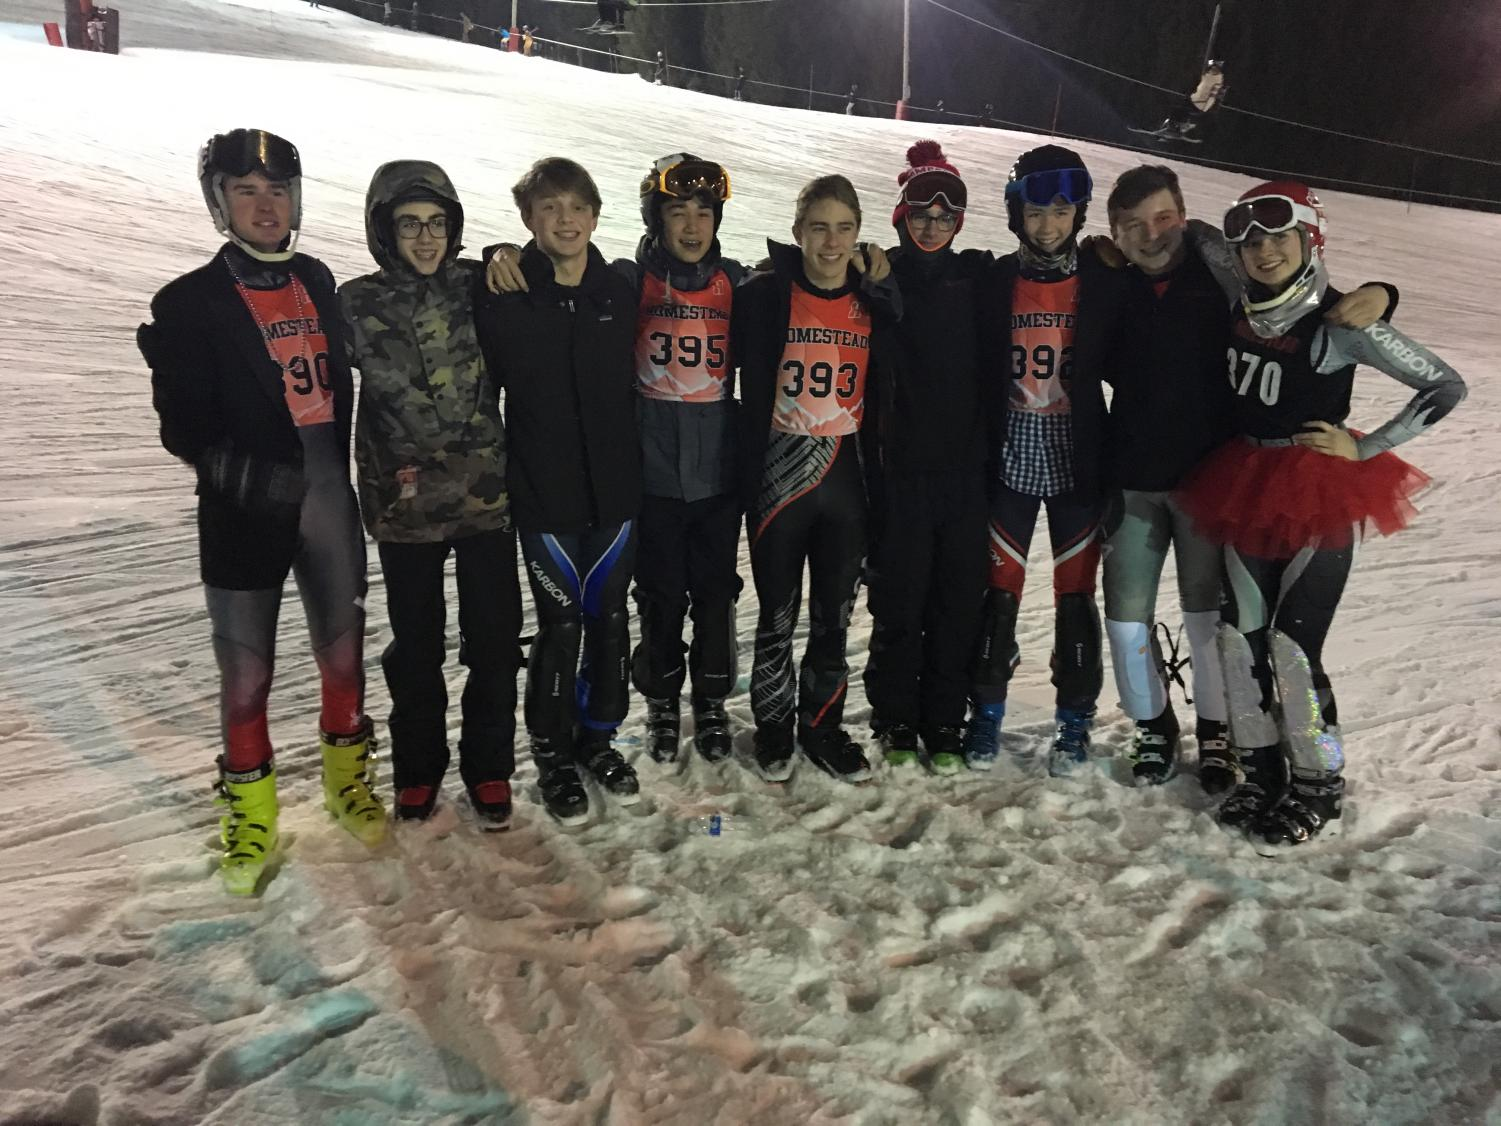 Ski team's State qualifiers gather together.